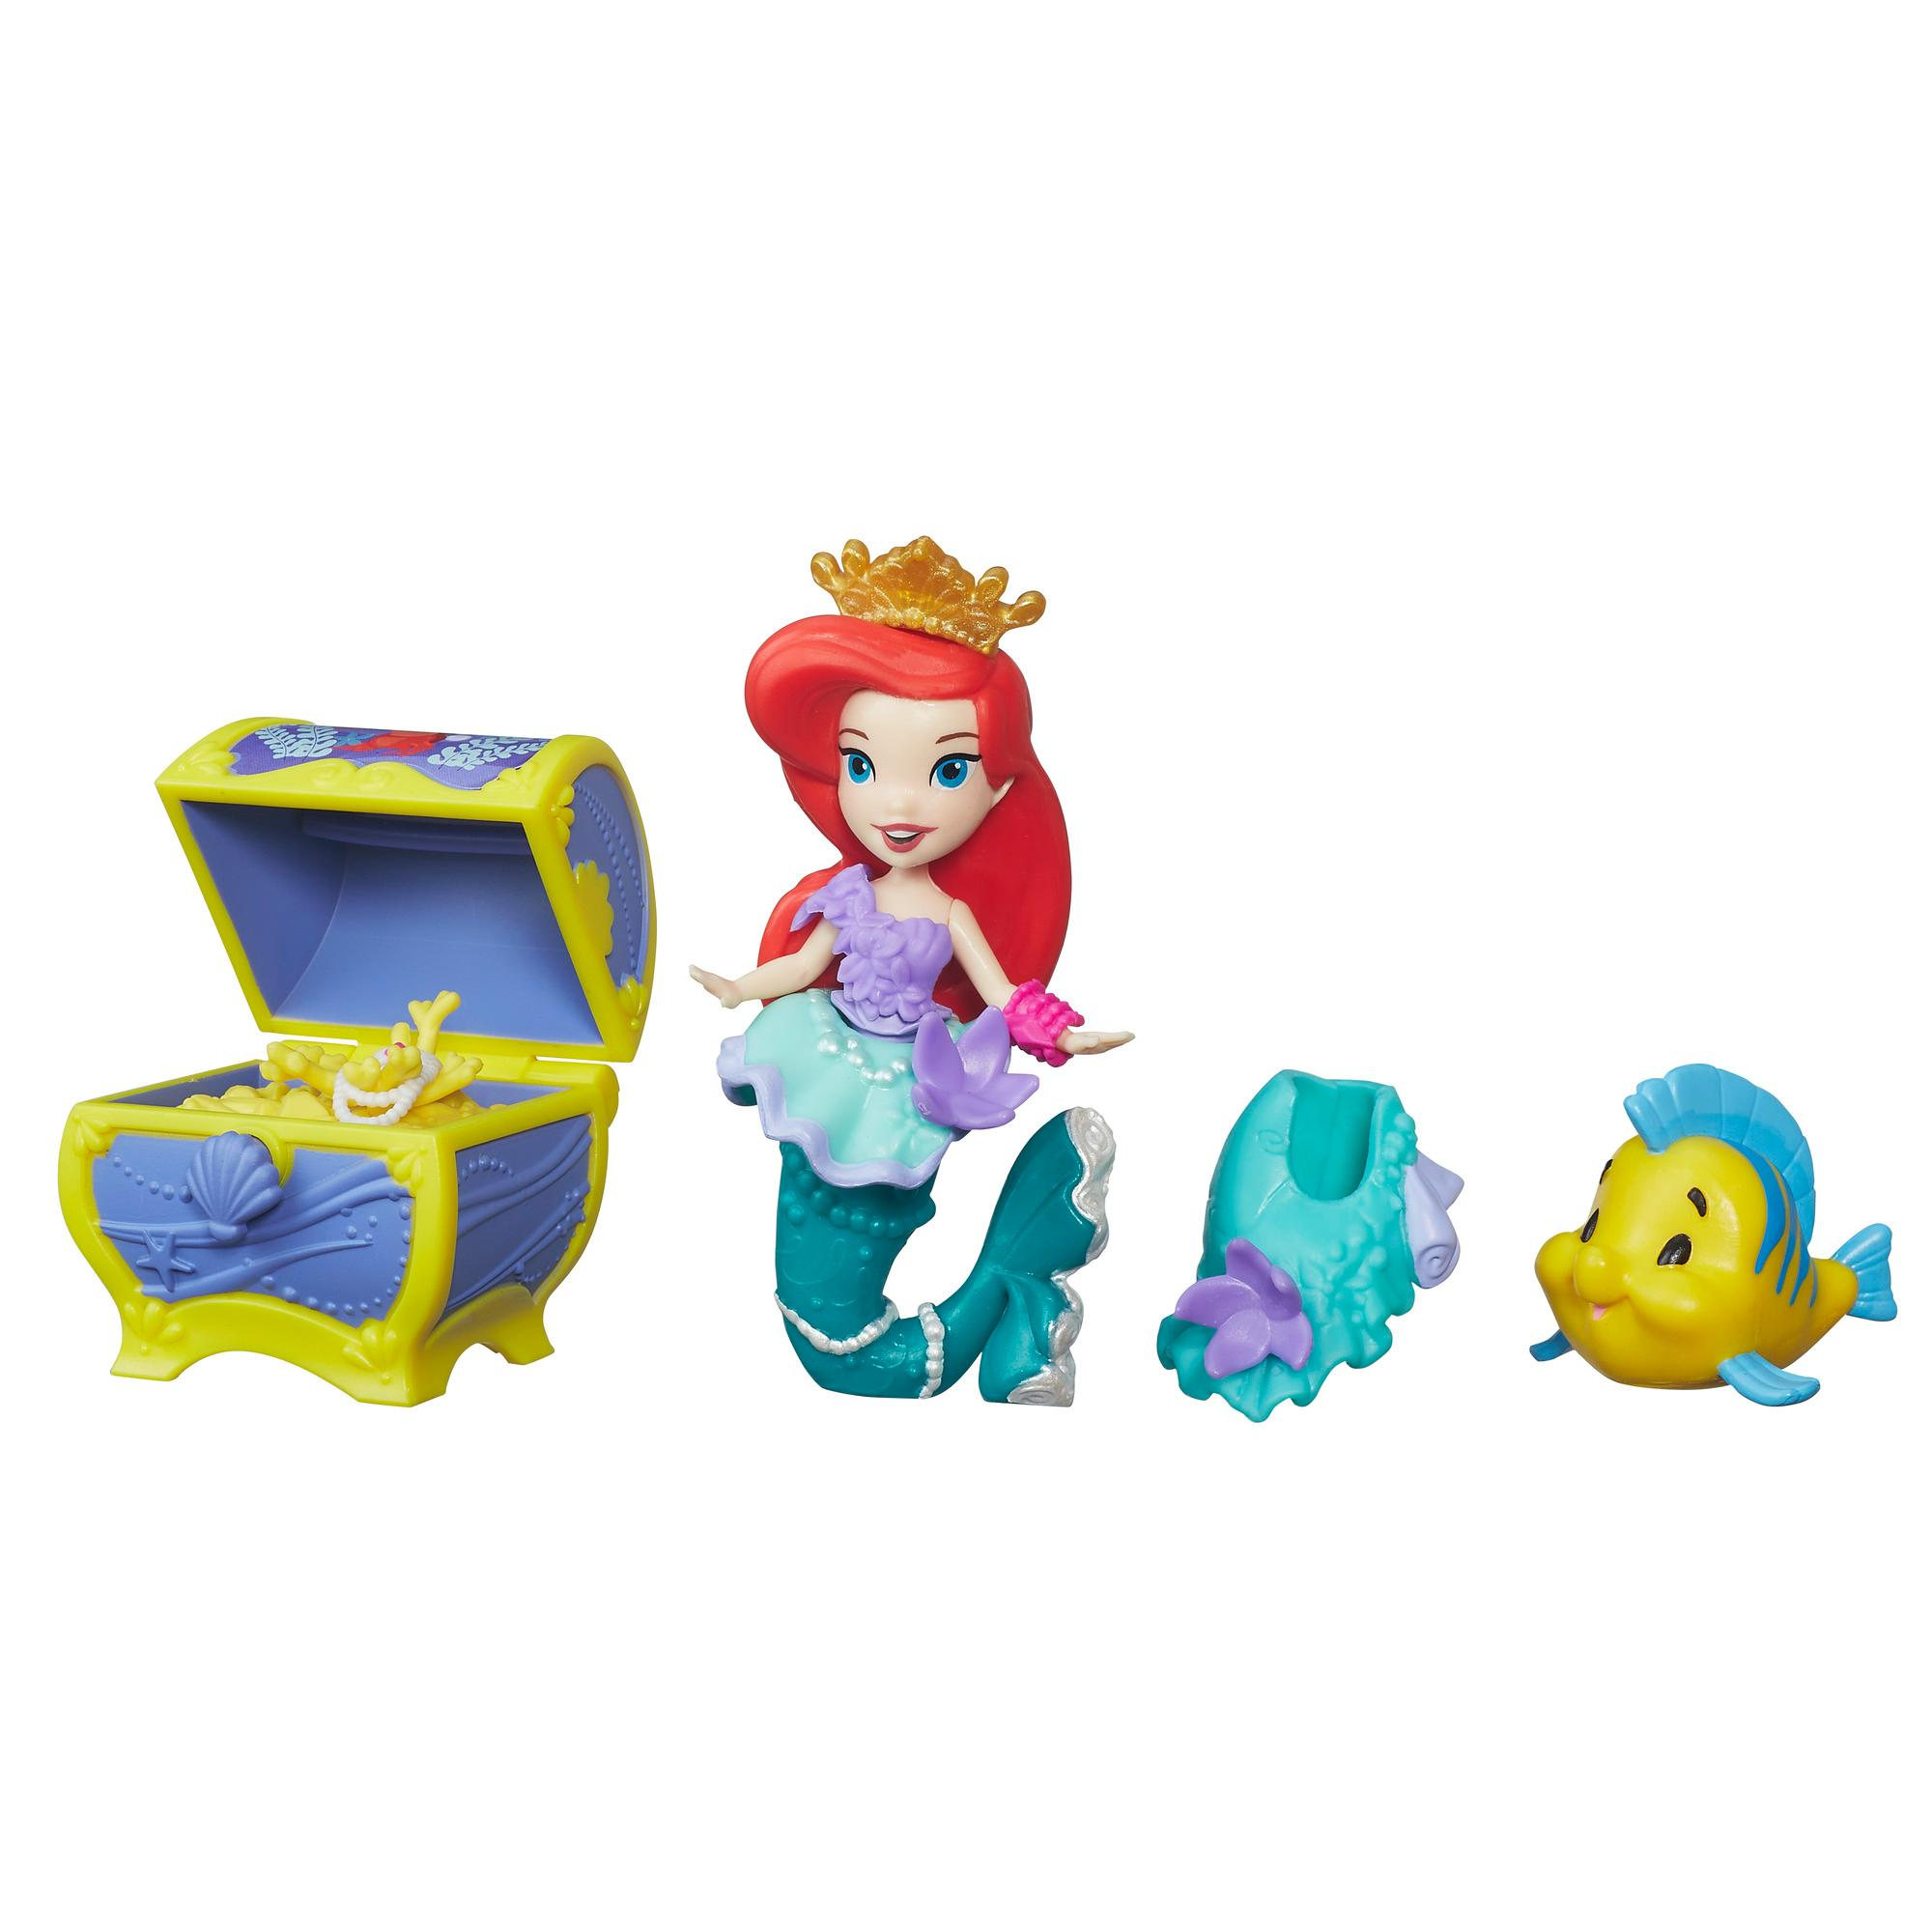 Disney Princess Little Kingdom Ariel's Treasure Chest